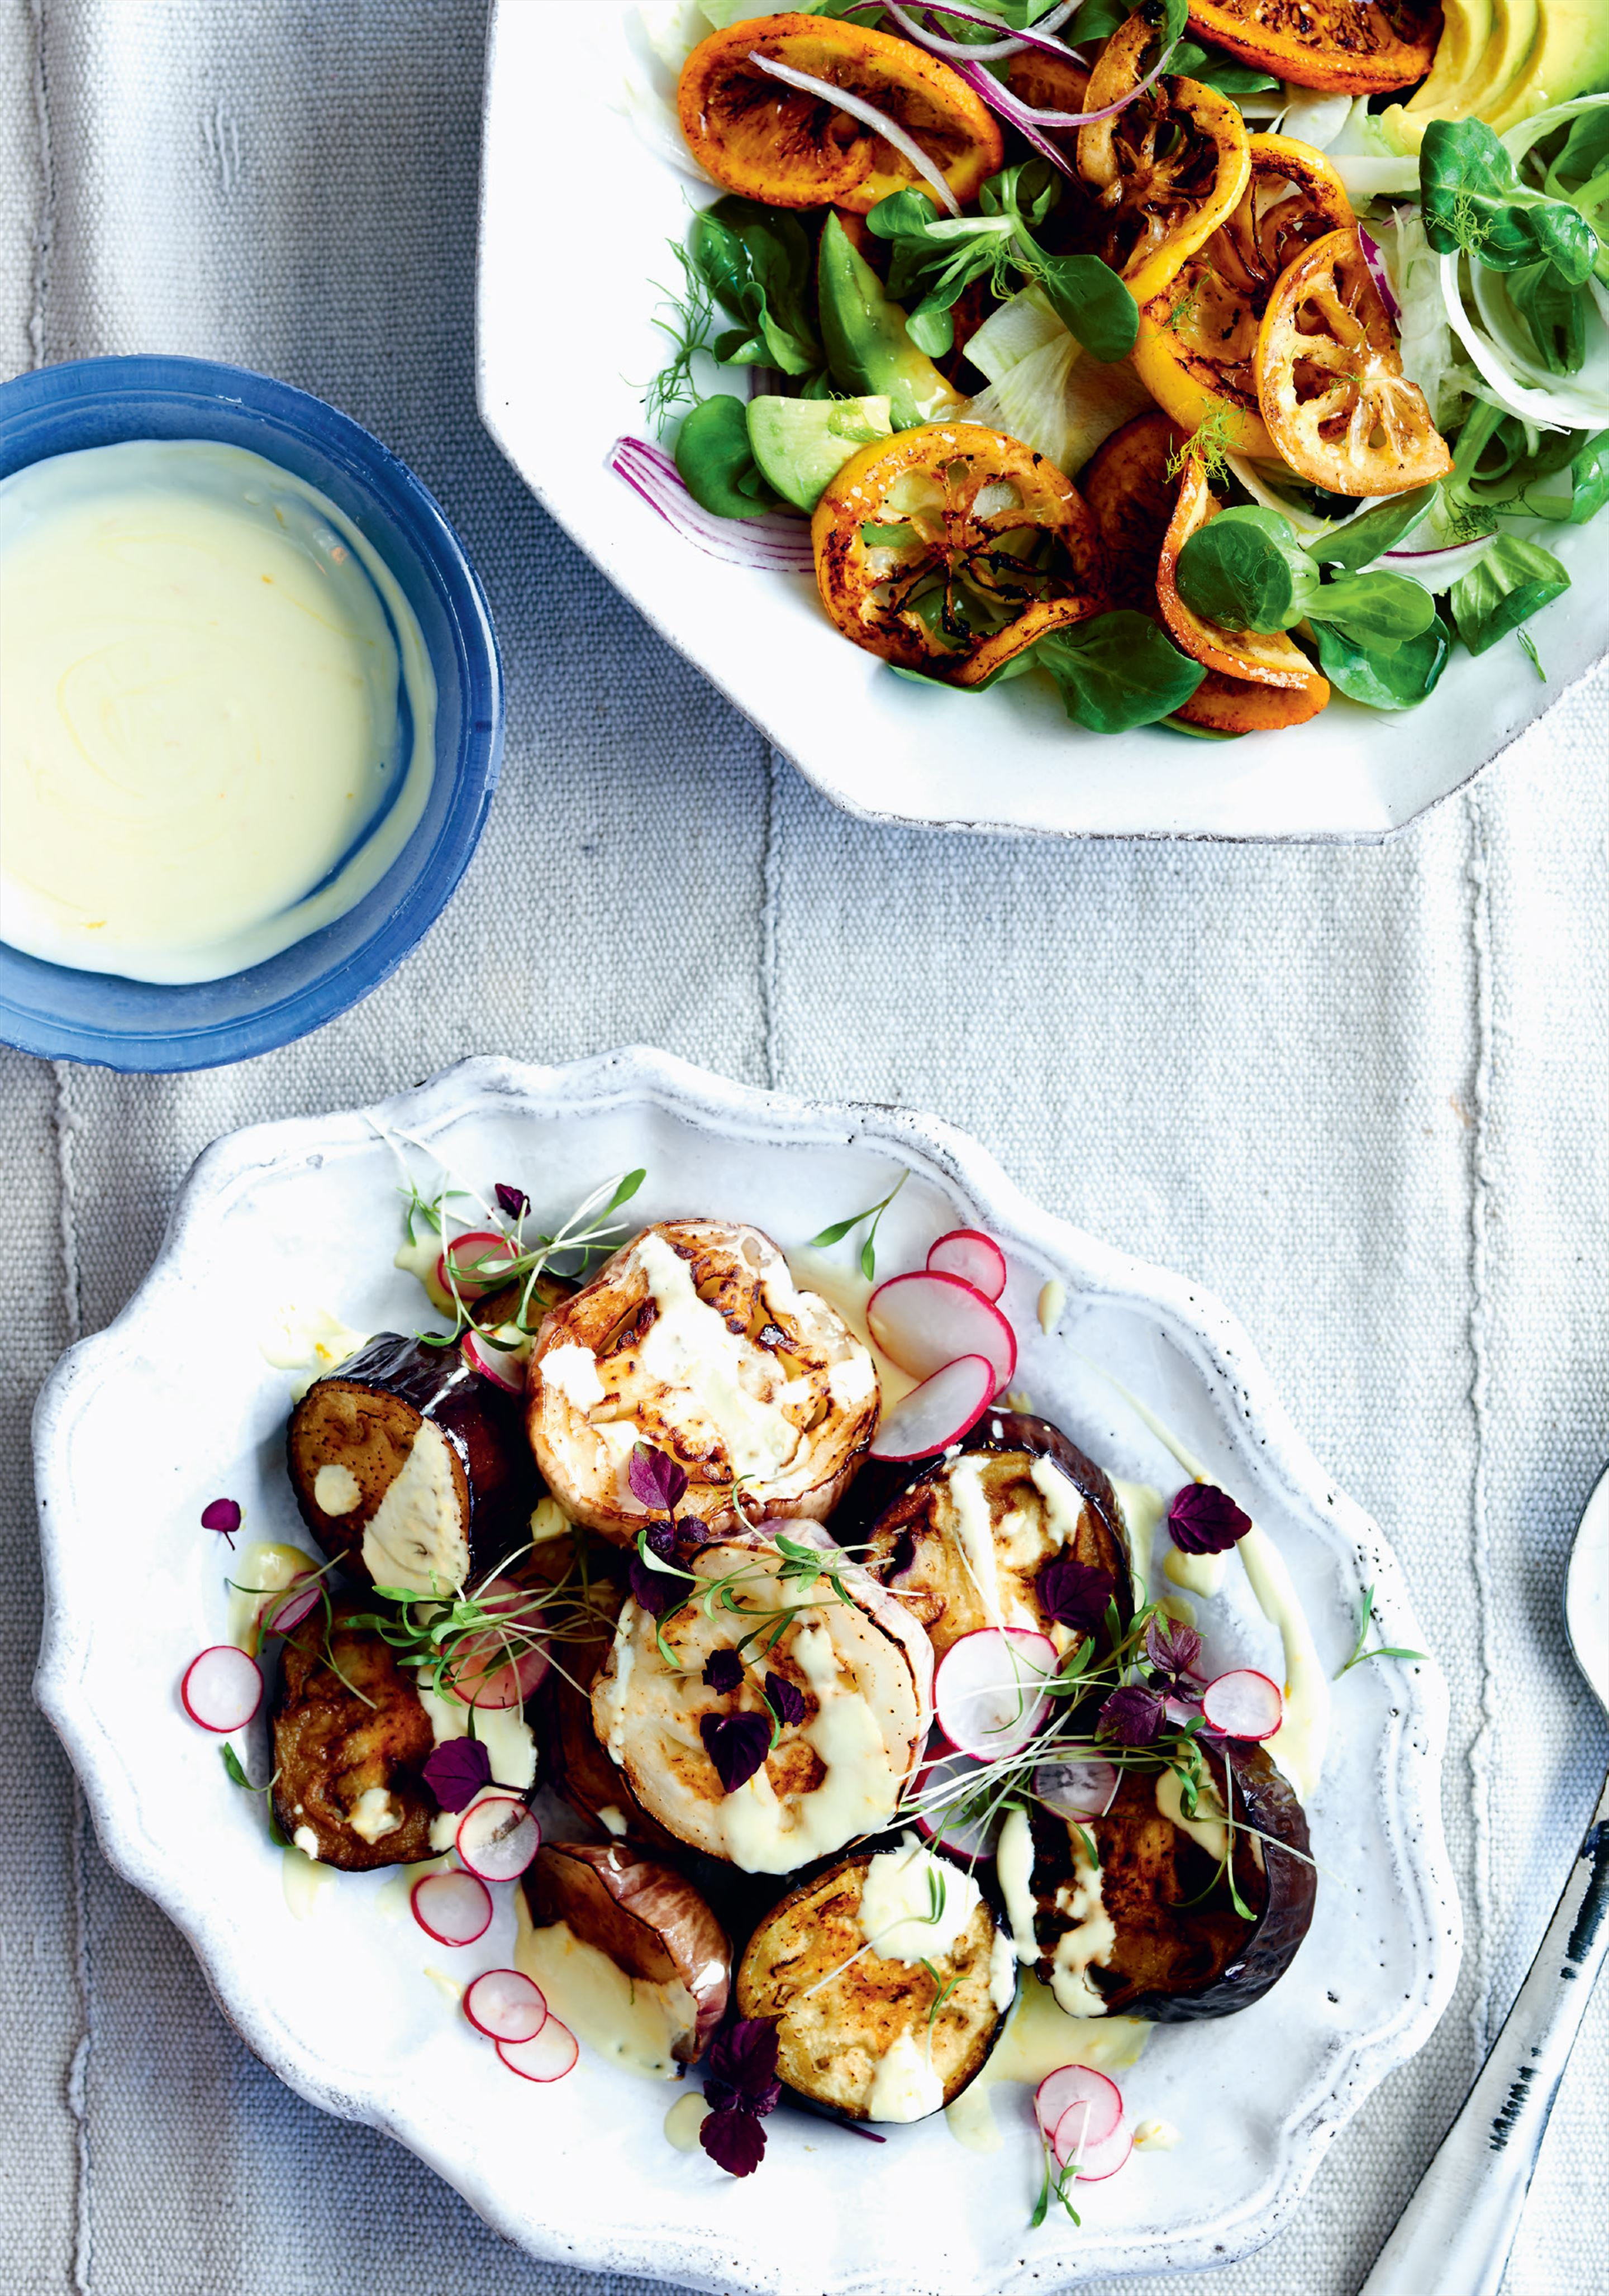 Roasted aubergine salad with lemon saffron yoghurt